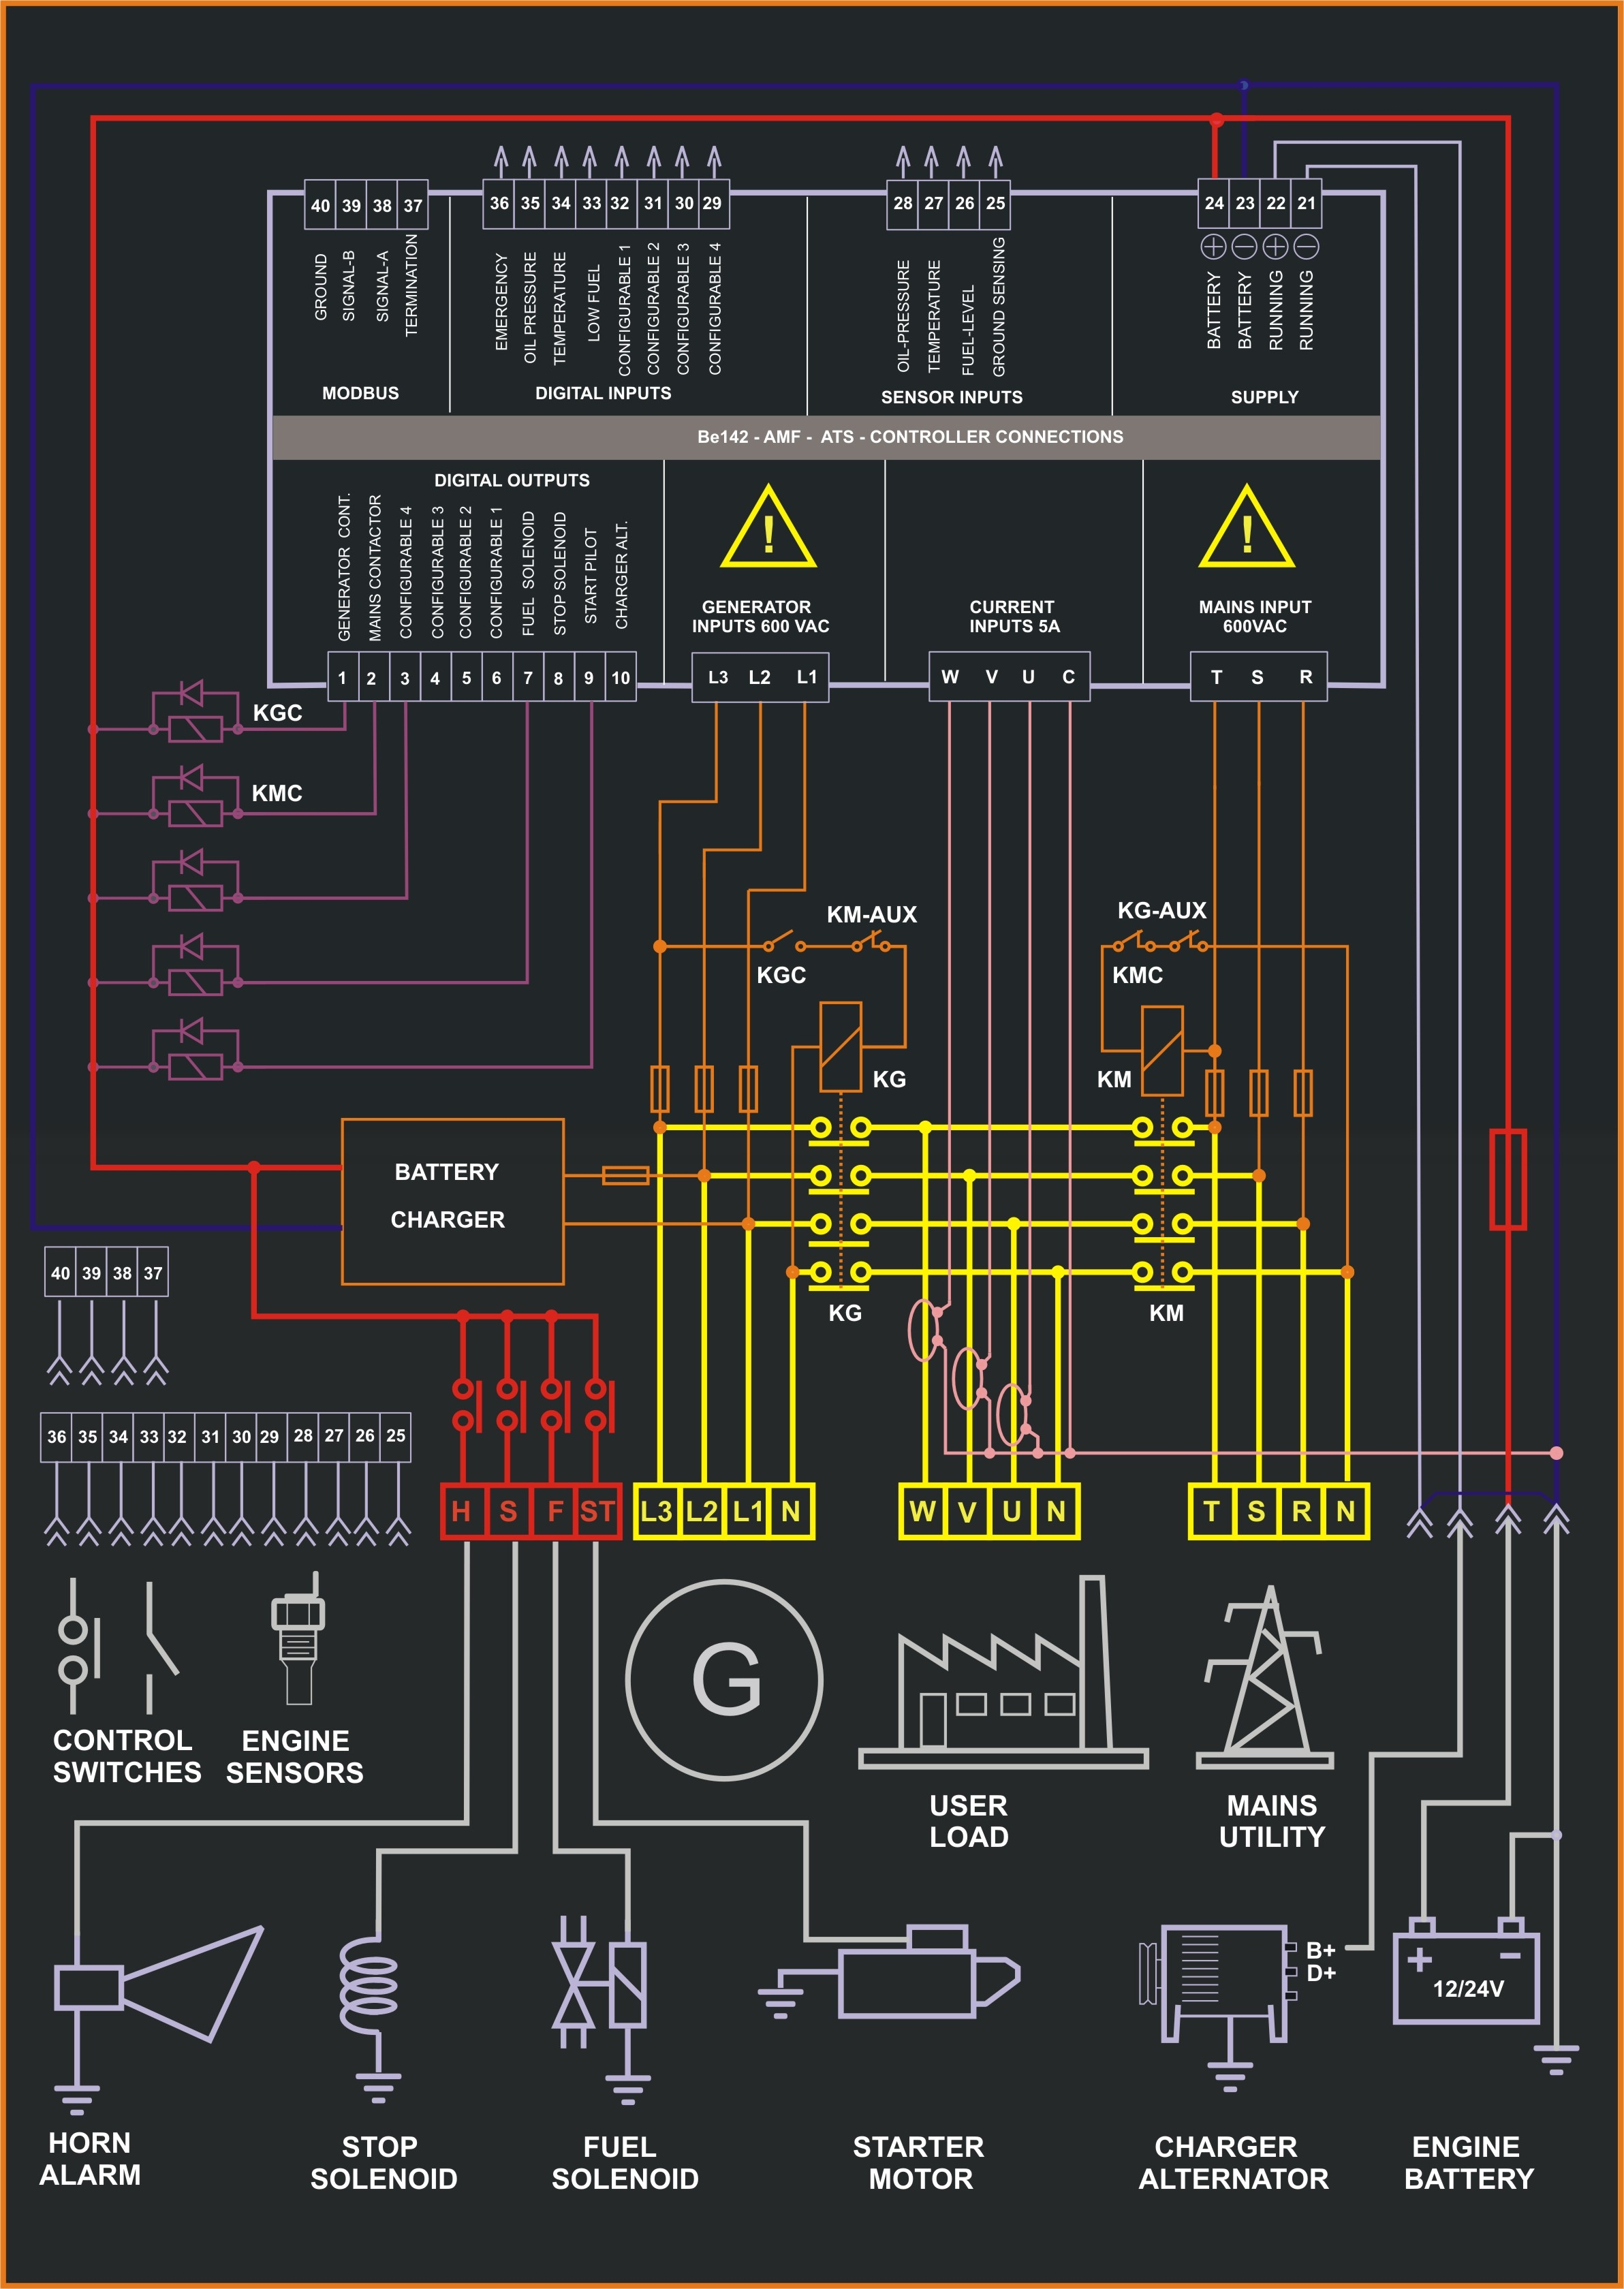 panel circuit diagram wiring diagram on the net Wiring Schematic Symbols